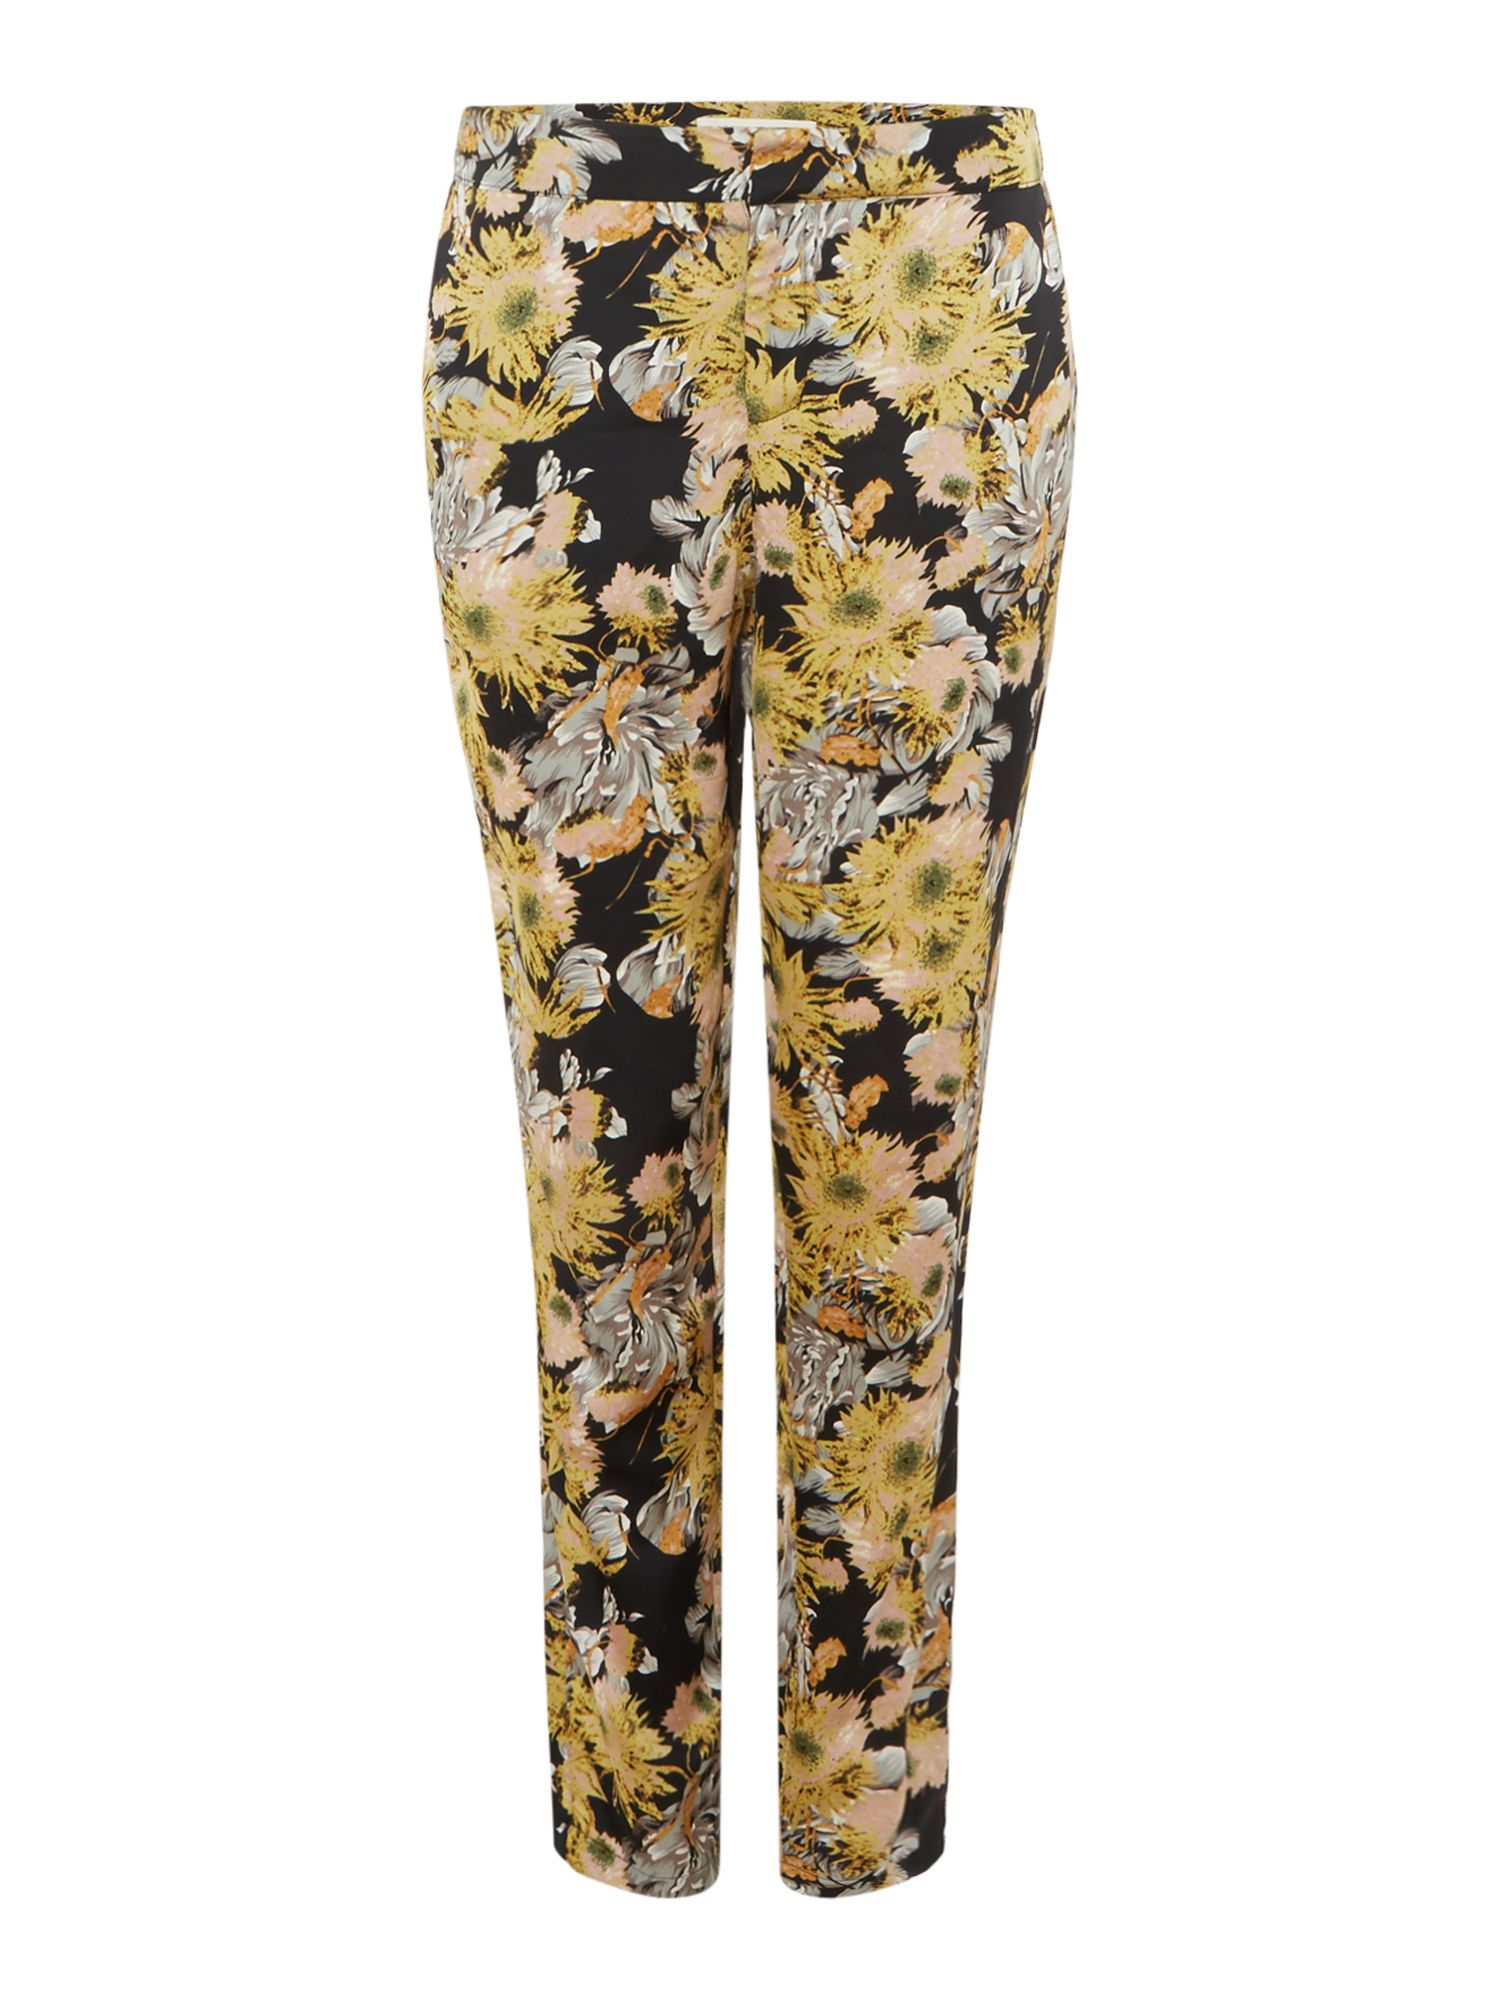 Sofie Schnoor Floral print trousers, Yellow